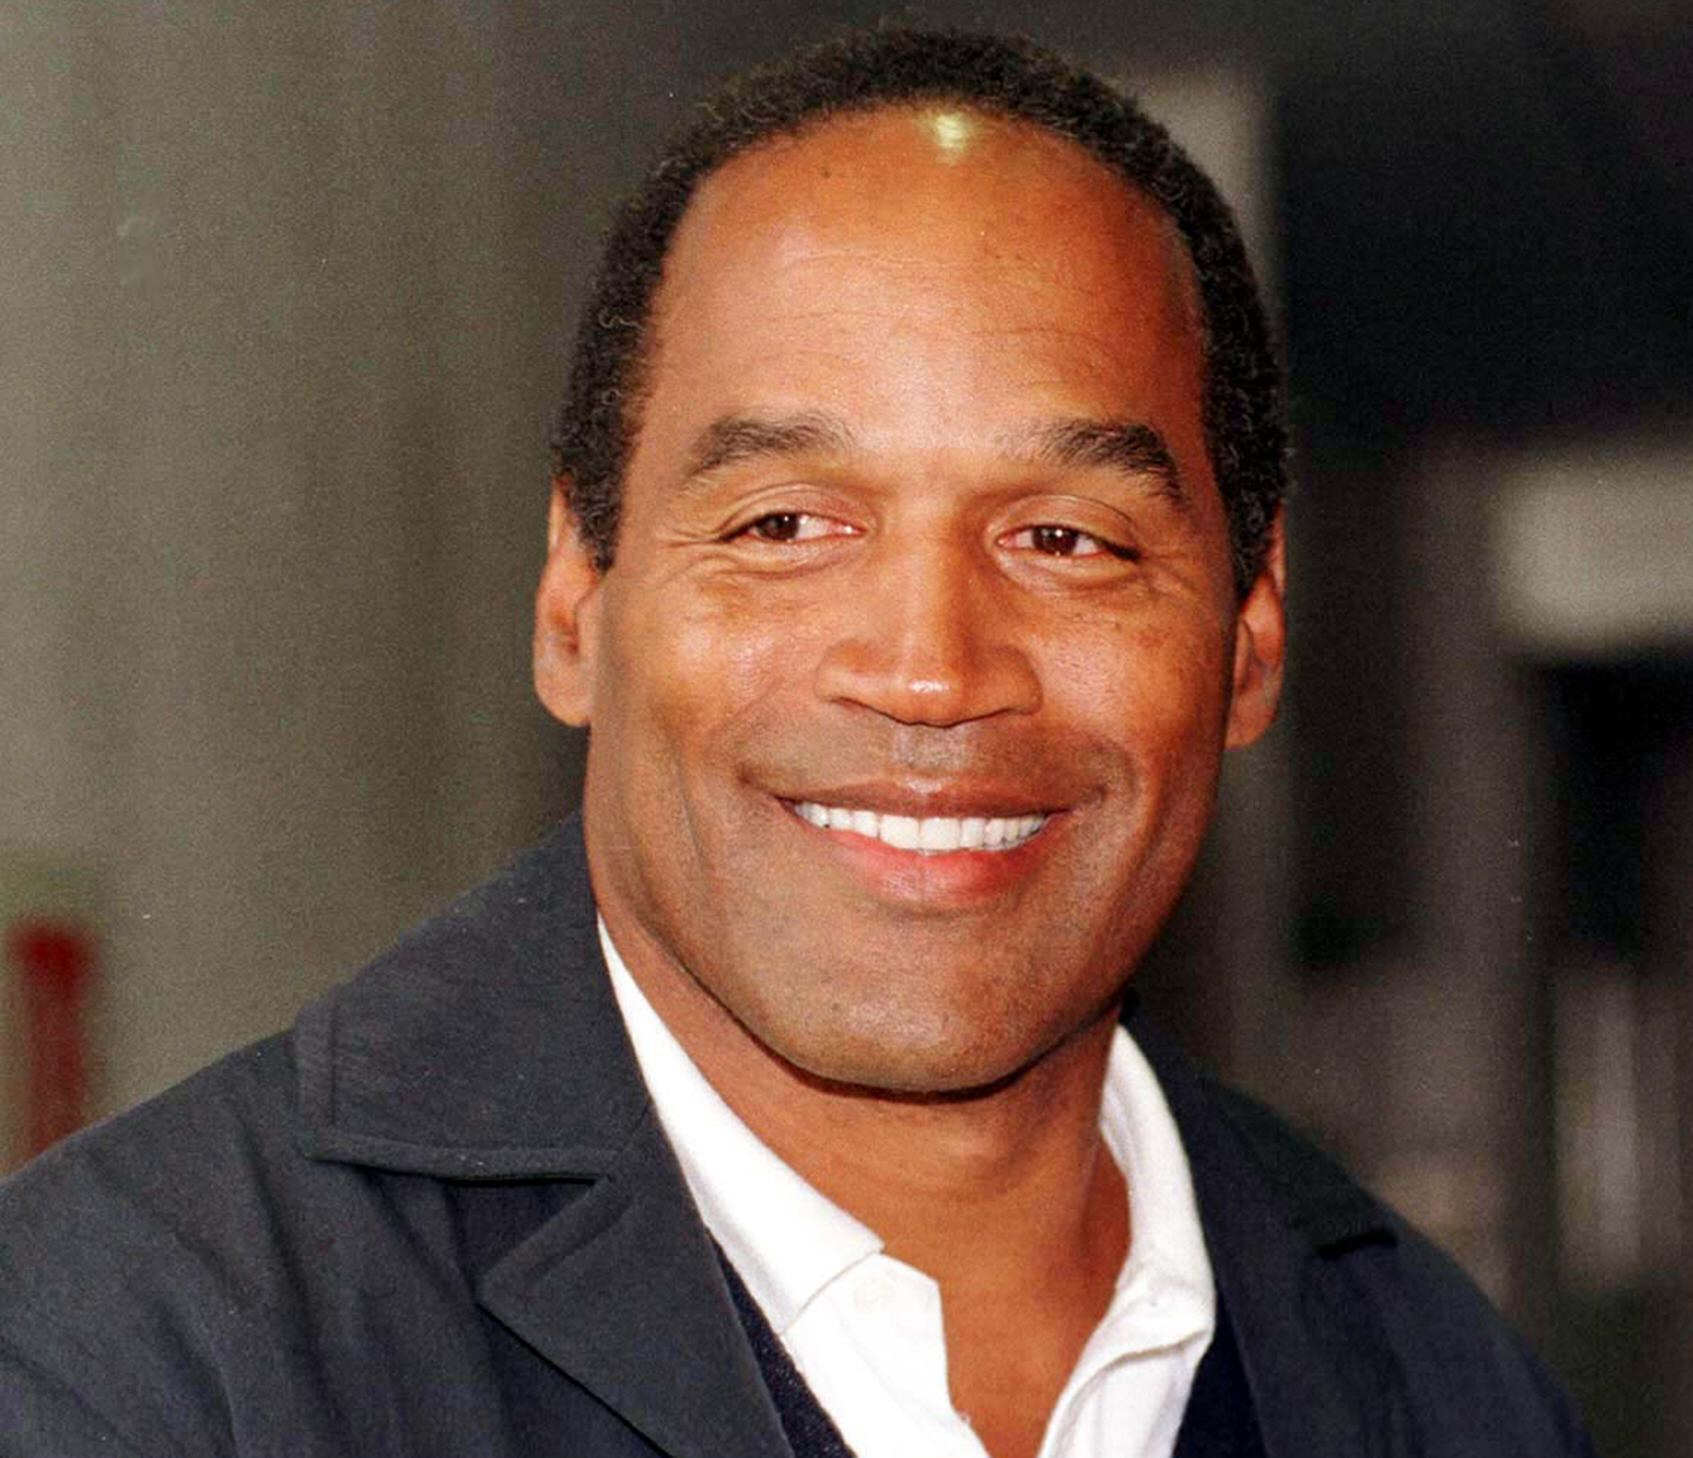 O.J. Simpson Could Be About To Confess To 1994 Murder PA 6623631